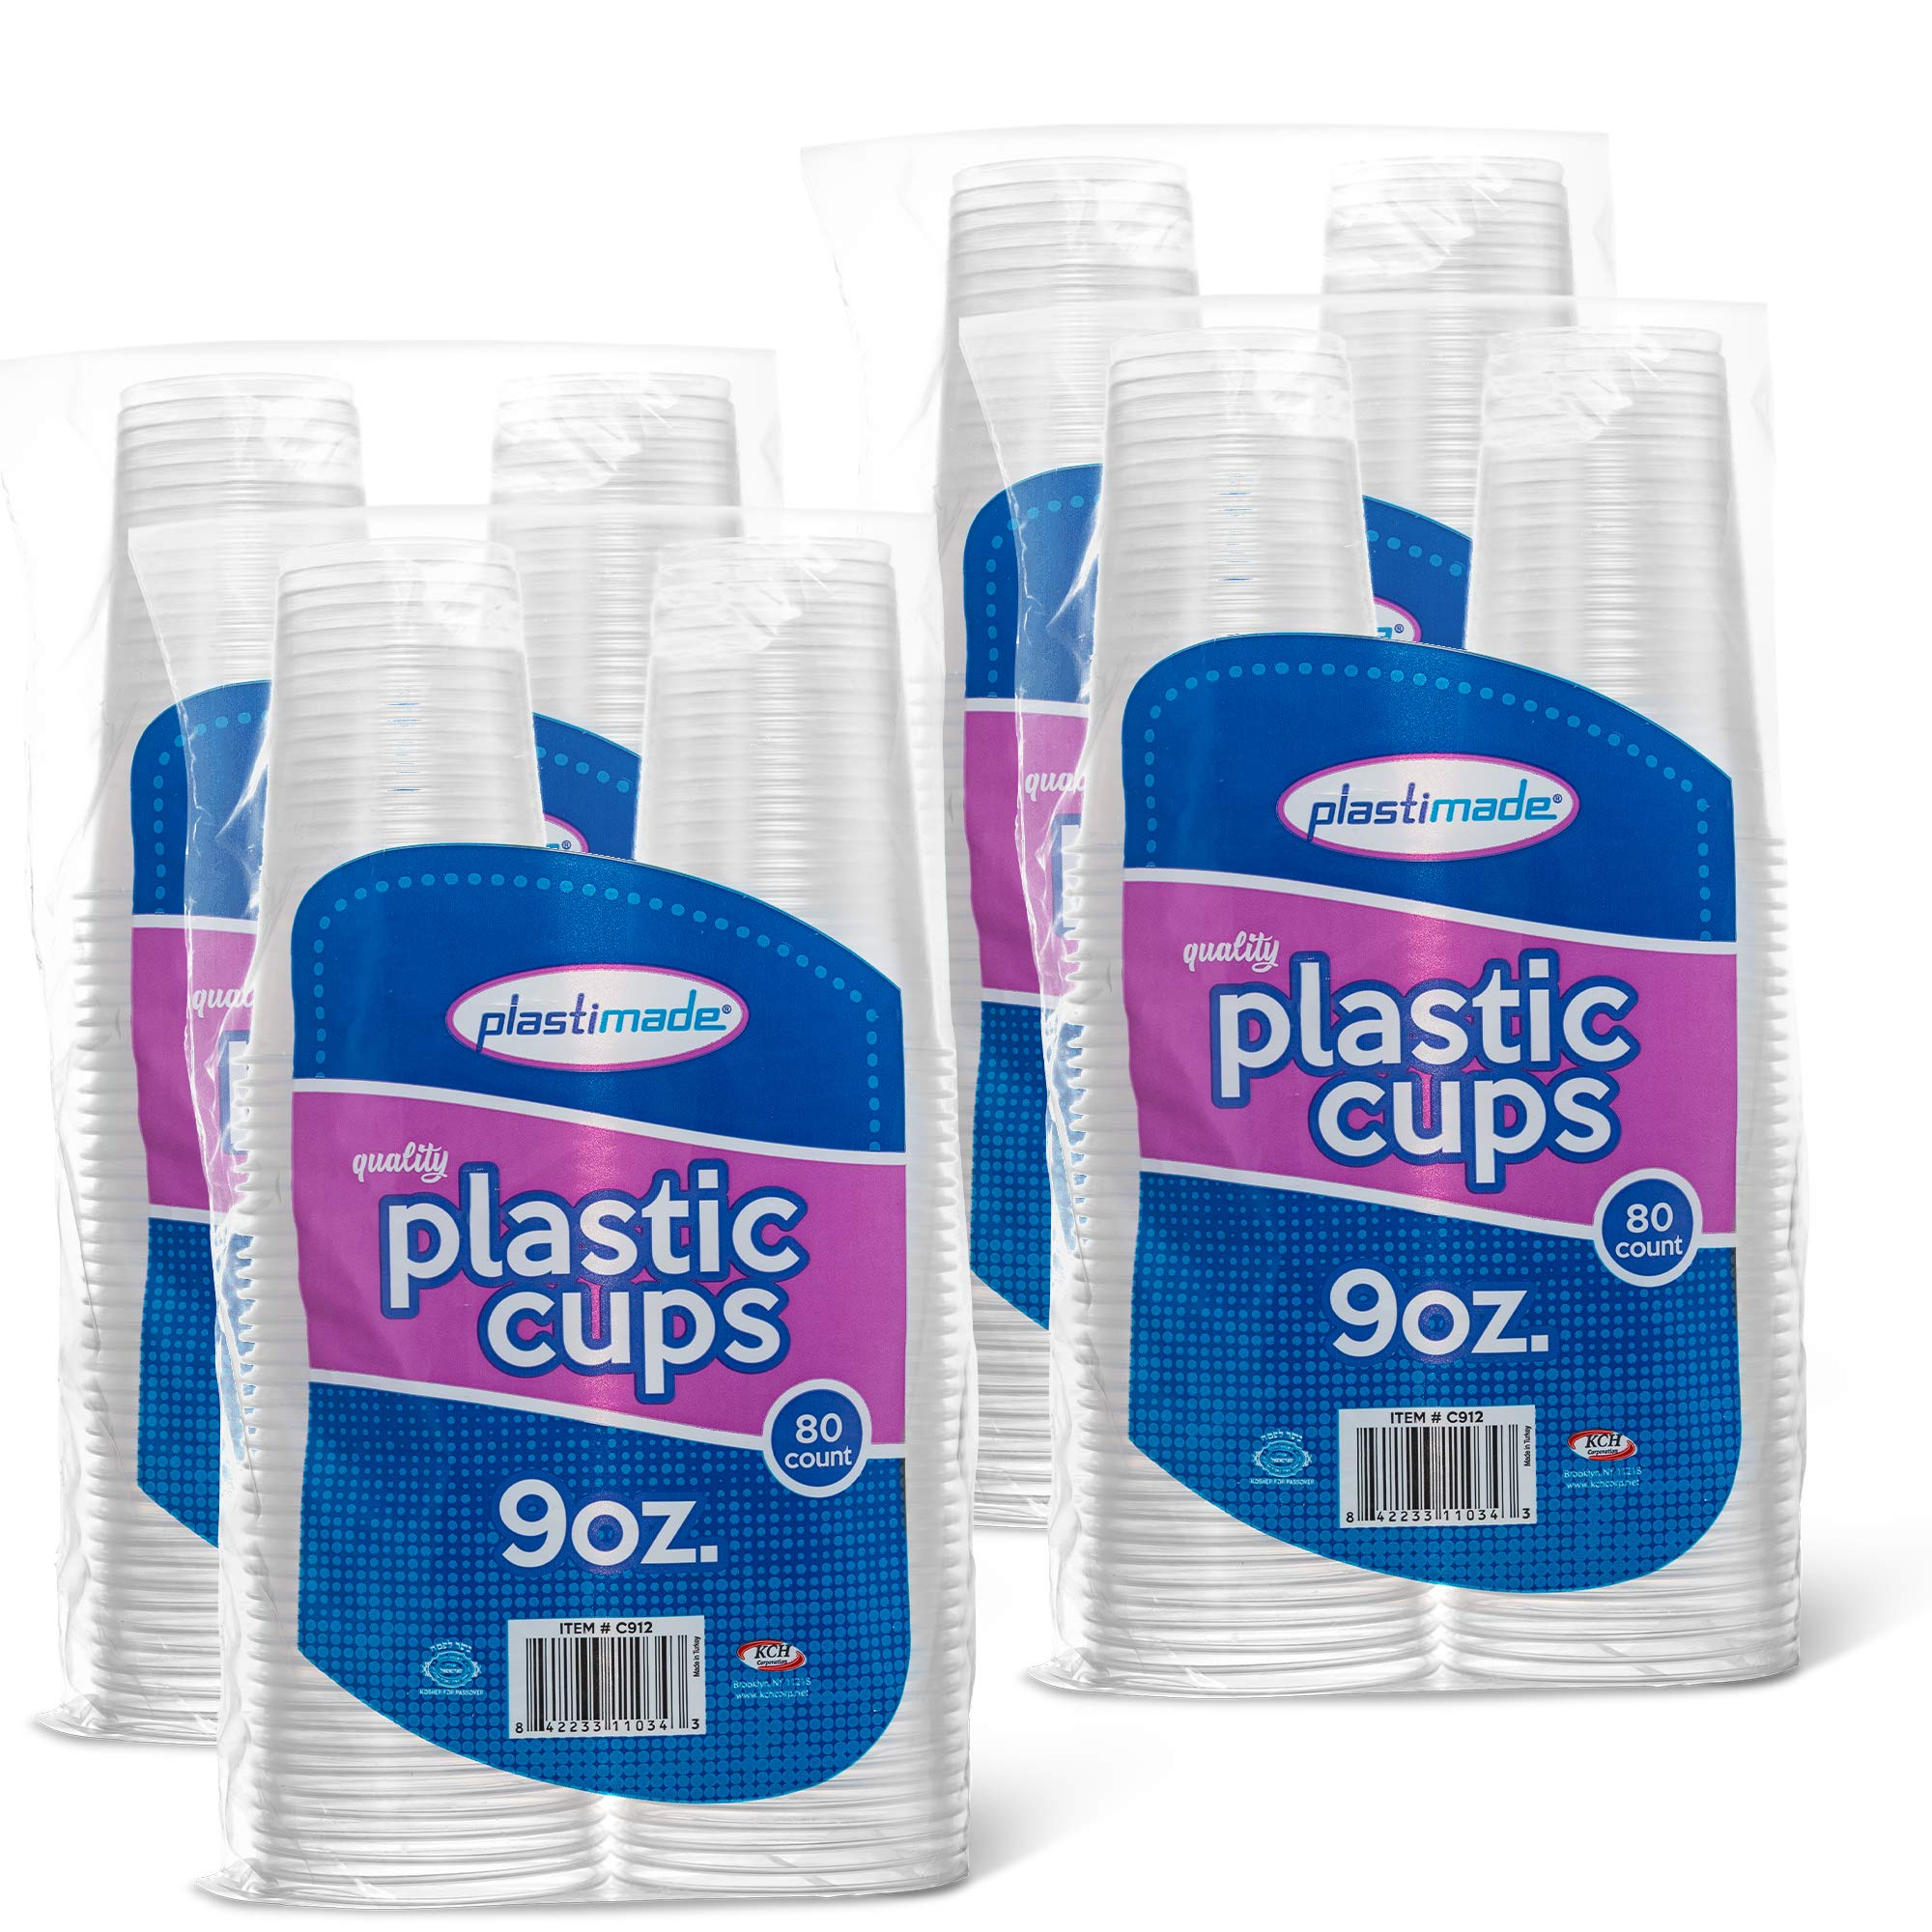 [320 Count] PlastiMade 9 Oz Clear Plastic Disposable Reusable Drinking Cups For Home, Office, Wedding, Events, Parties, Take Out, Water, Juice, Soda, Beer Cocktails (4 Packs)